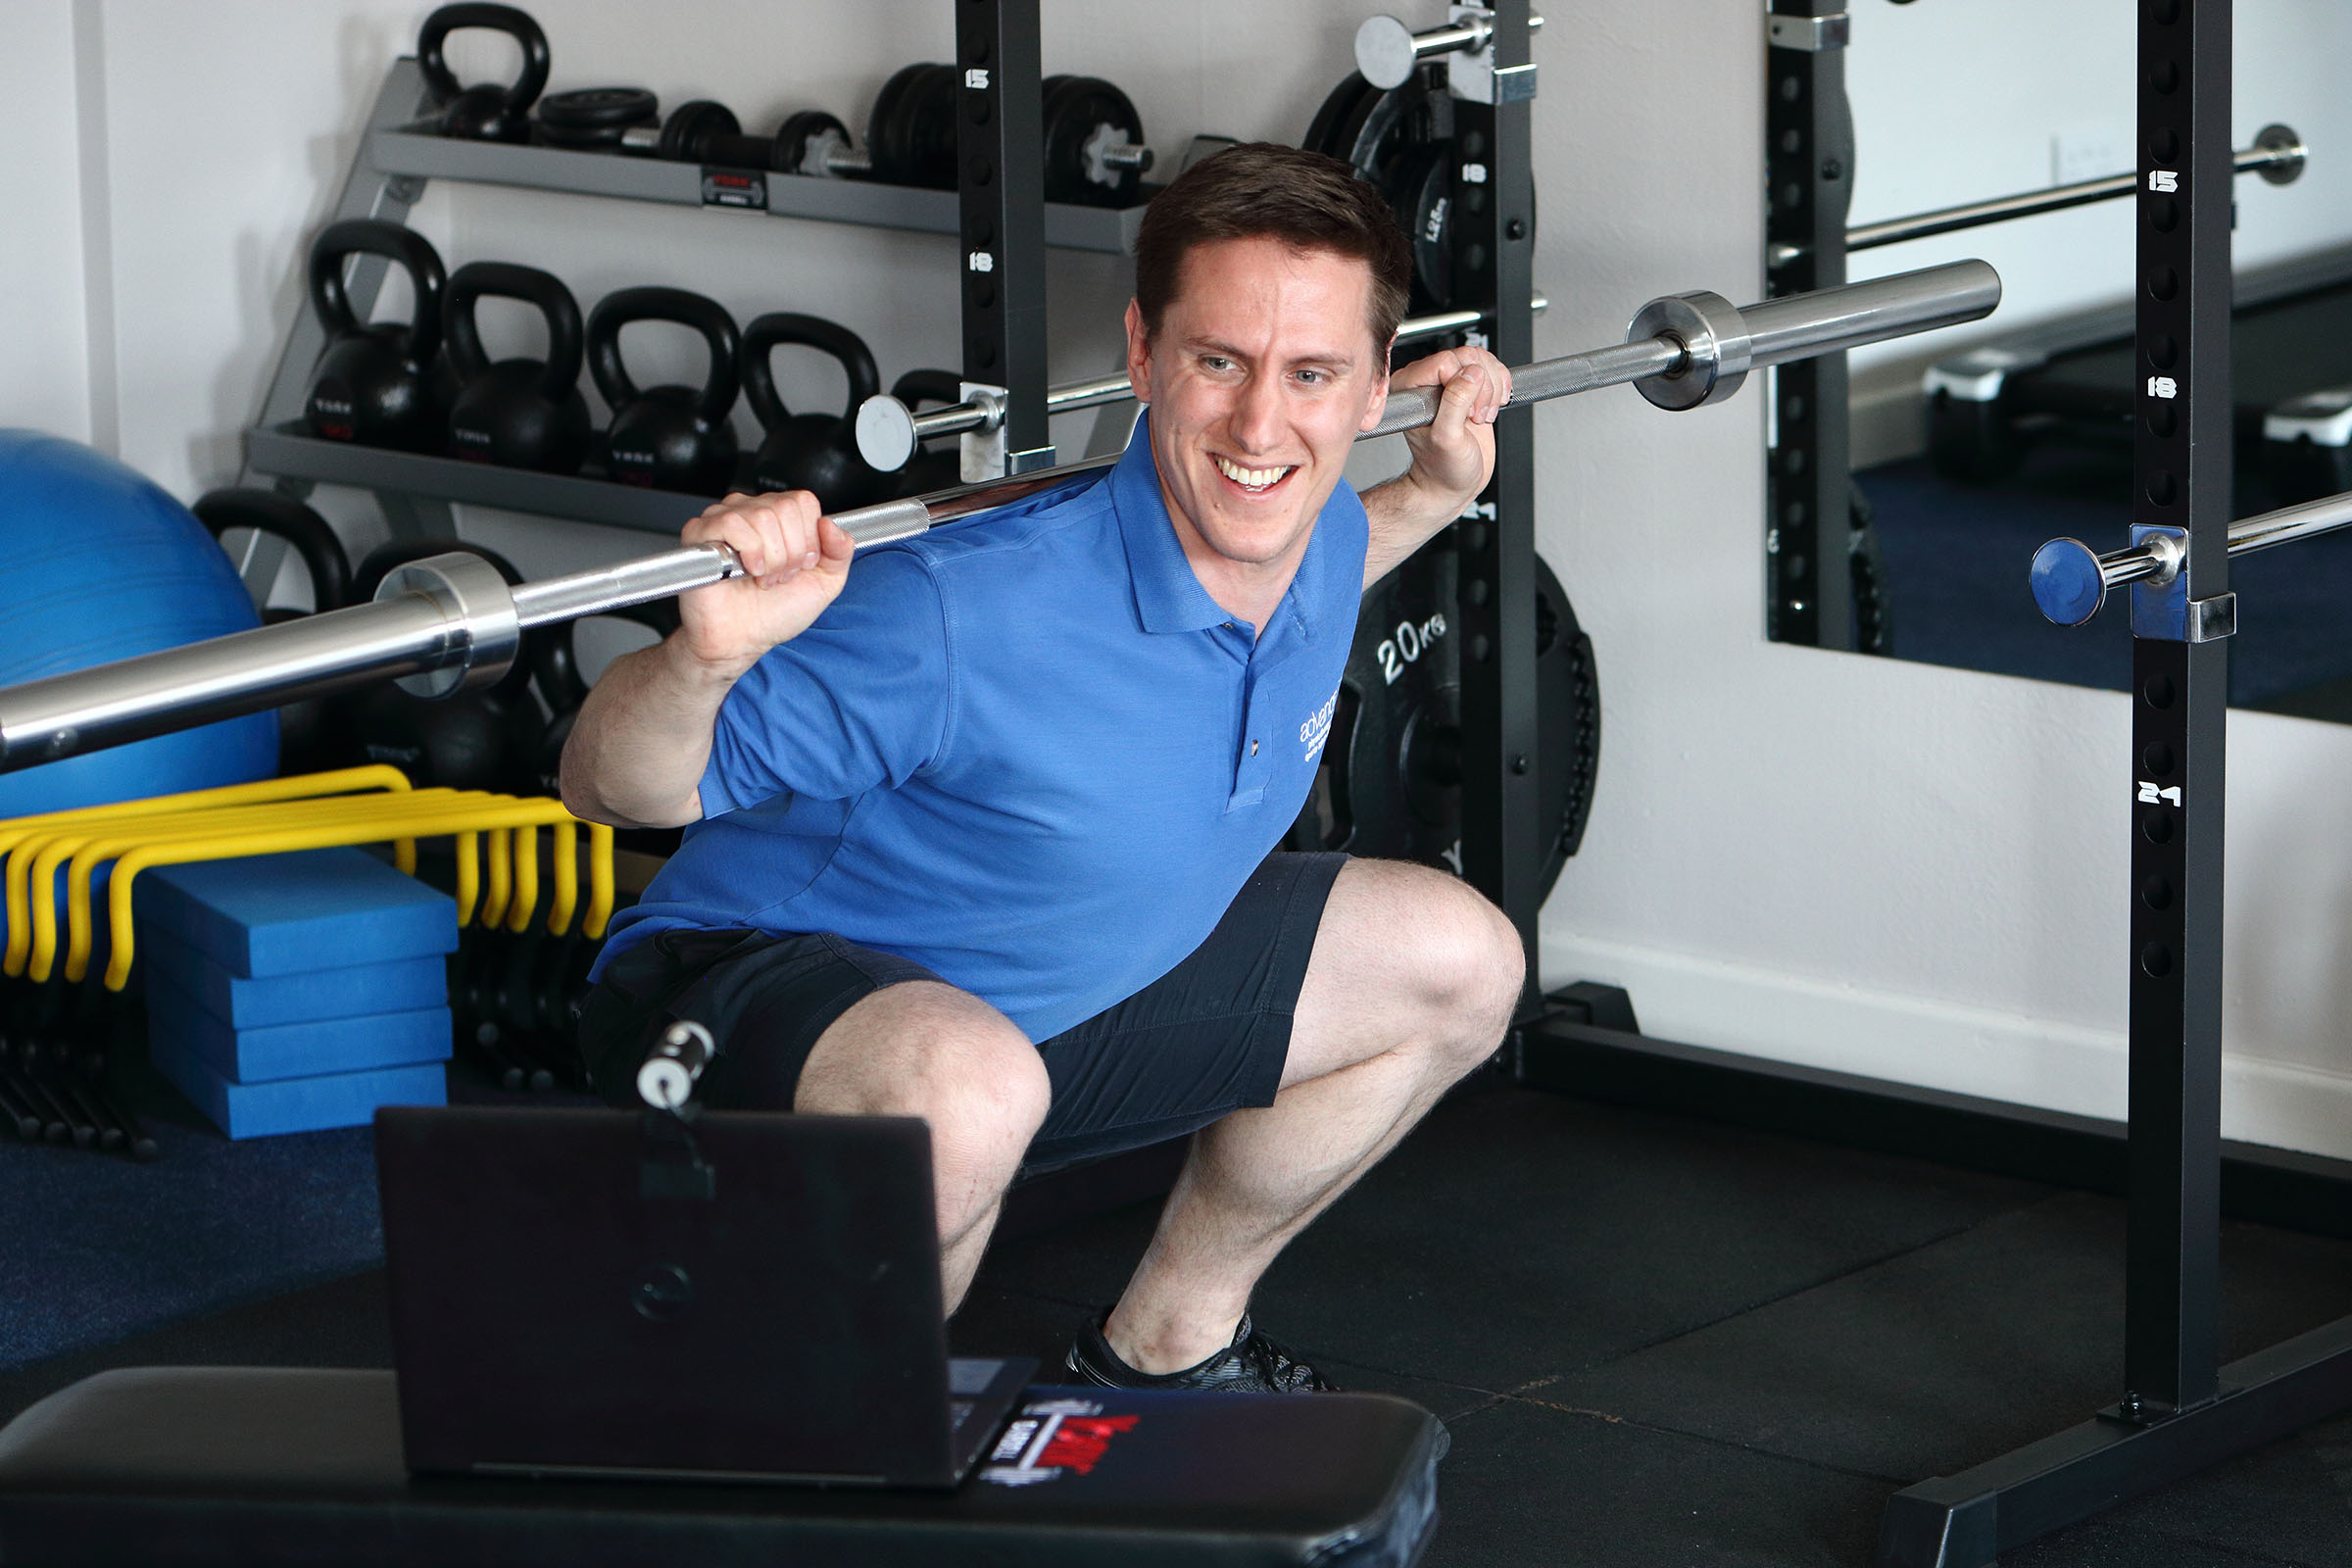 Physio demonstrating a squat with a bar during an online physio consultation